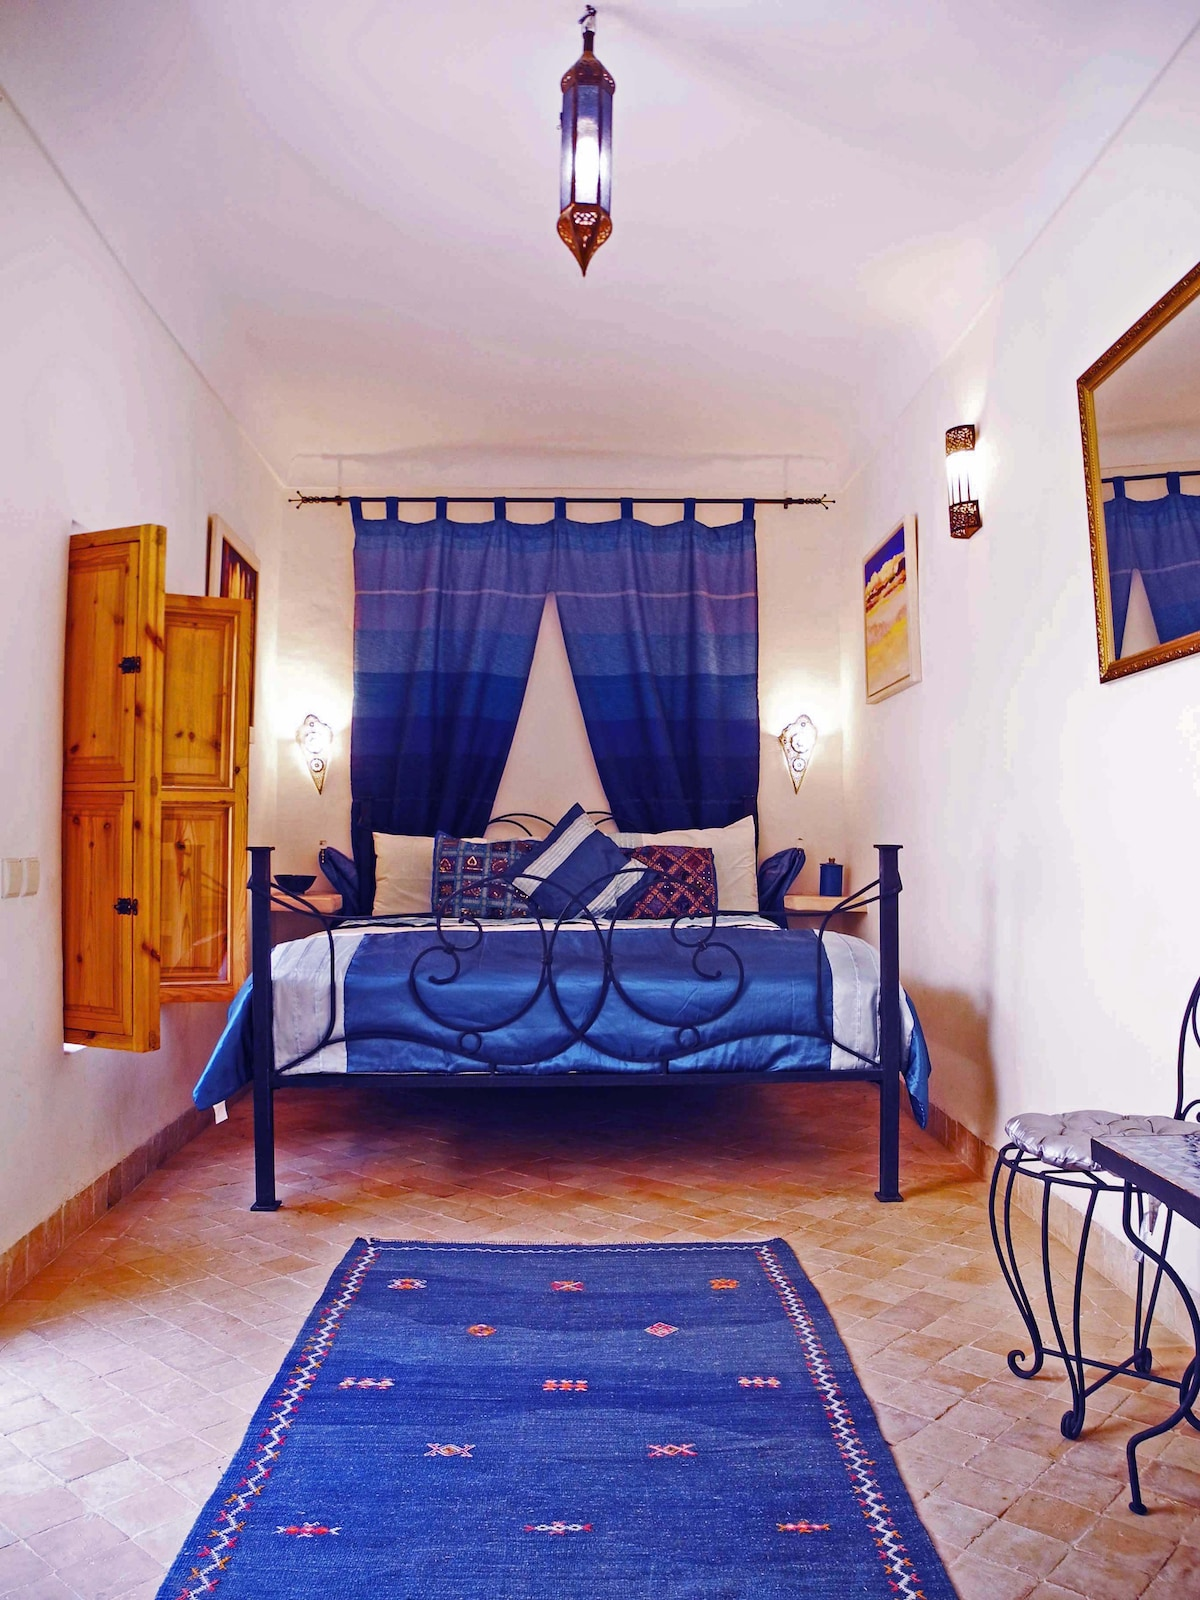 Our charming first floor Blue Double Bedroom with en suite tadalect bathroom.